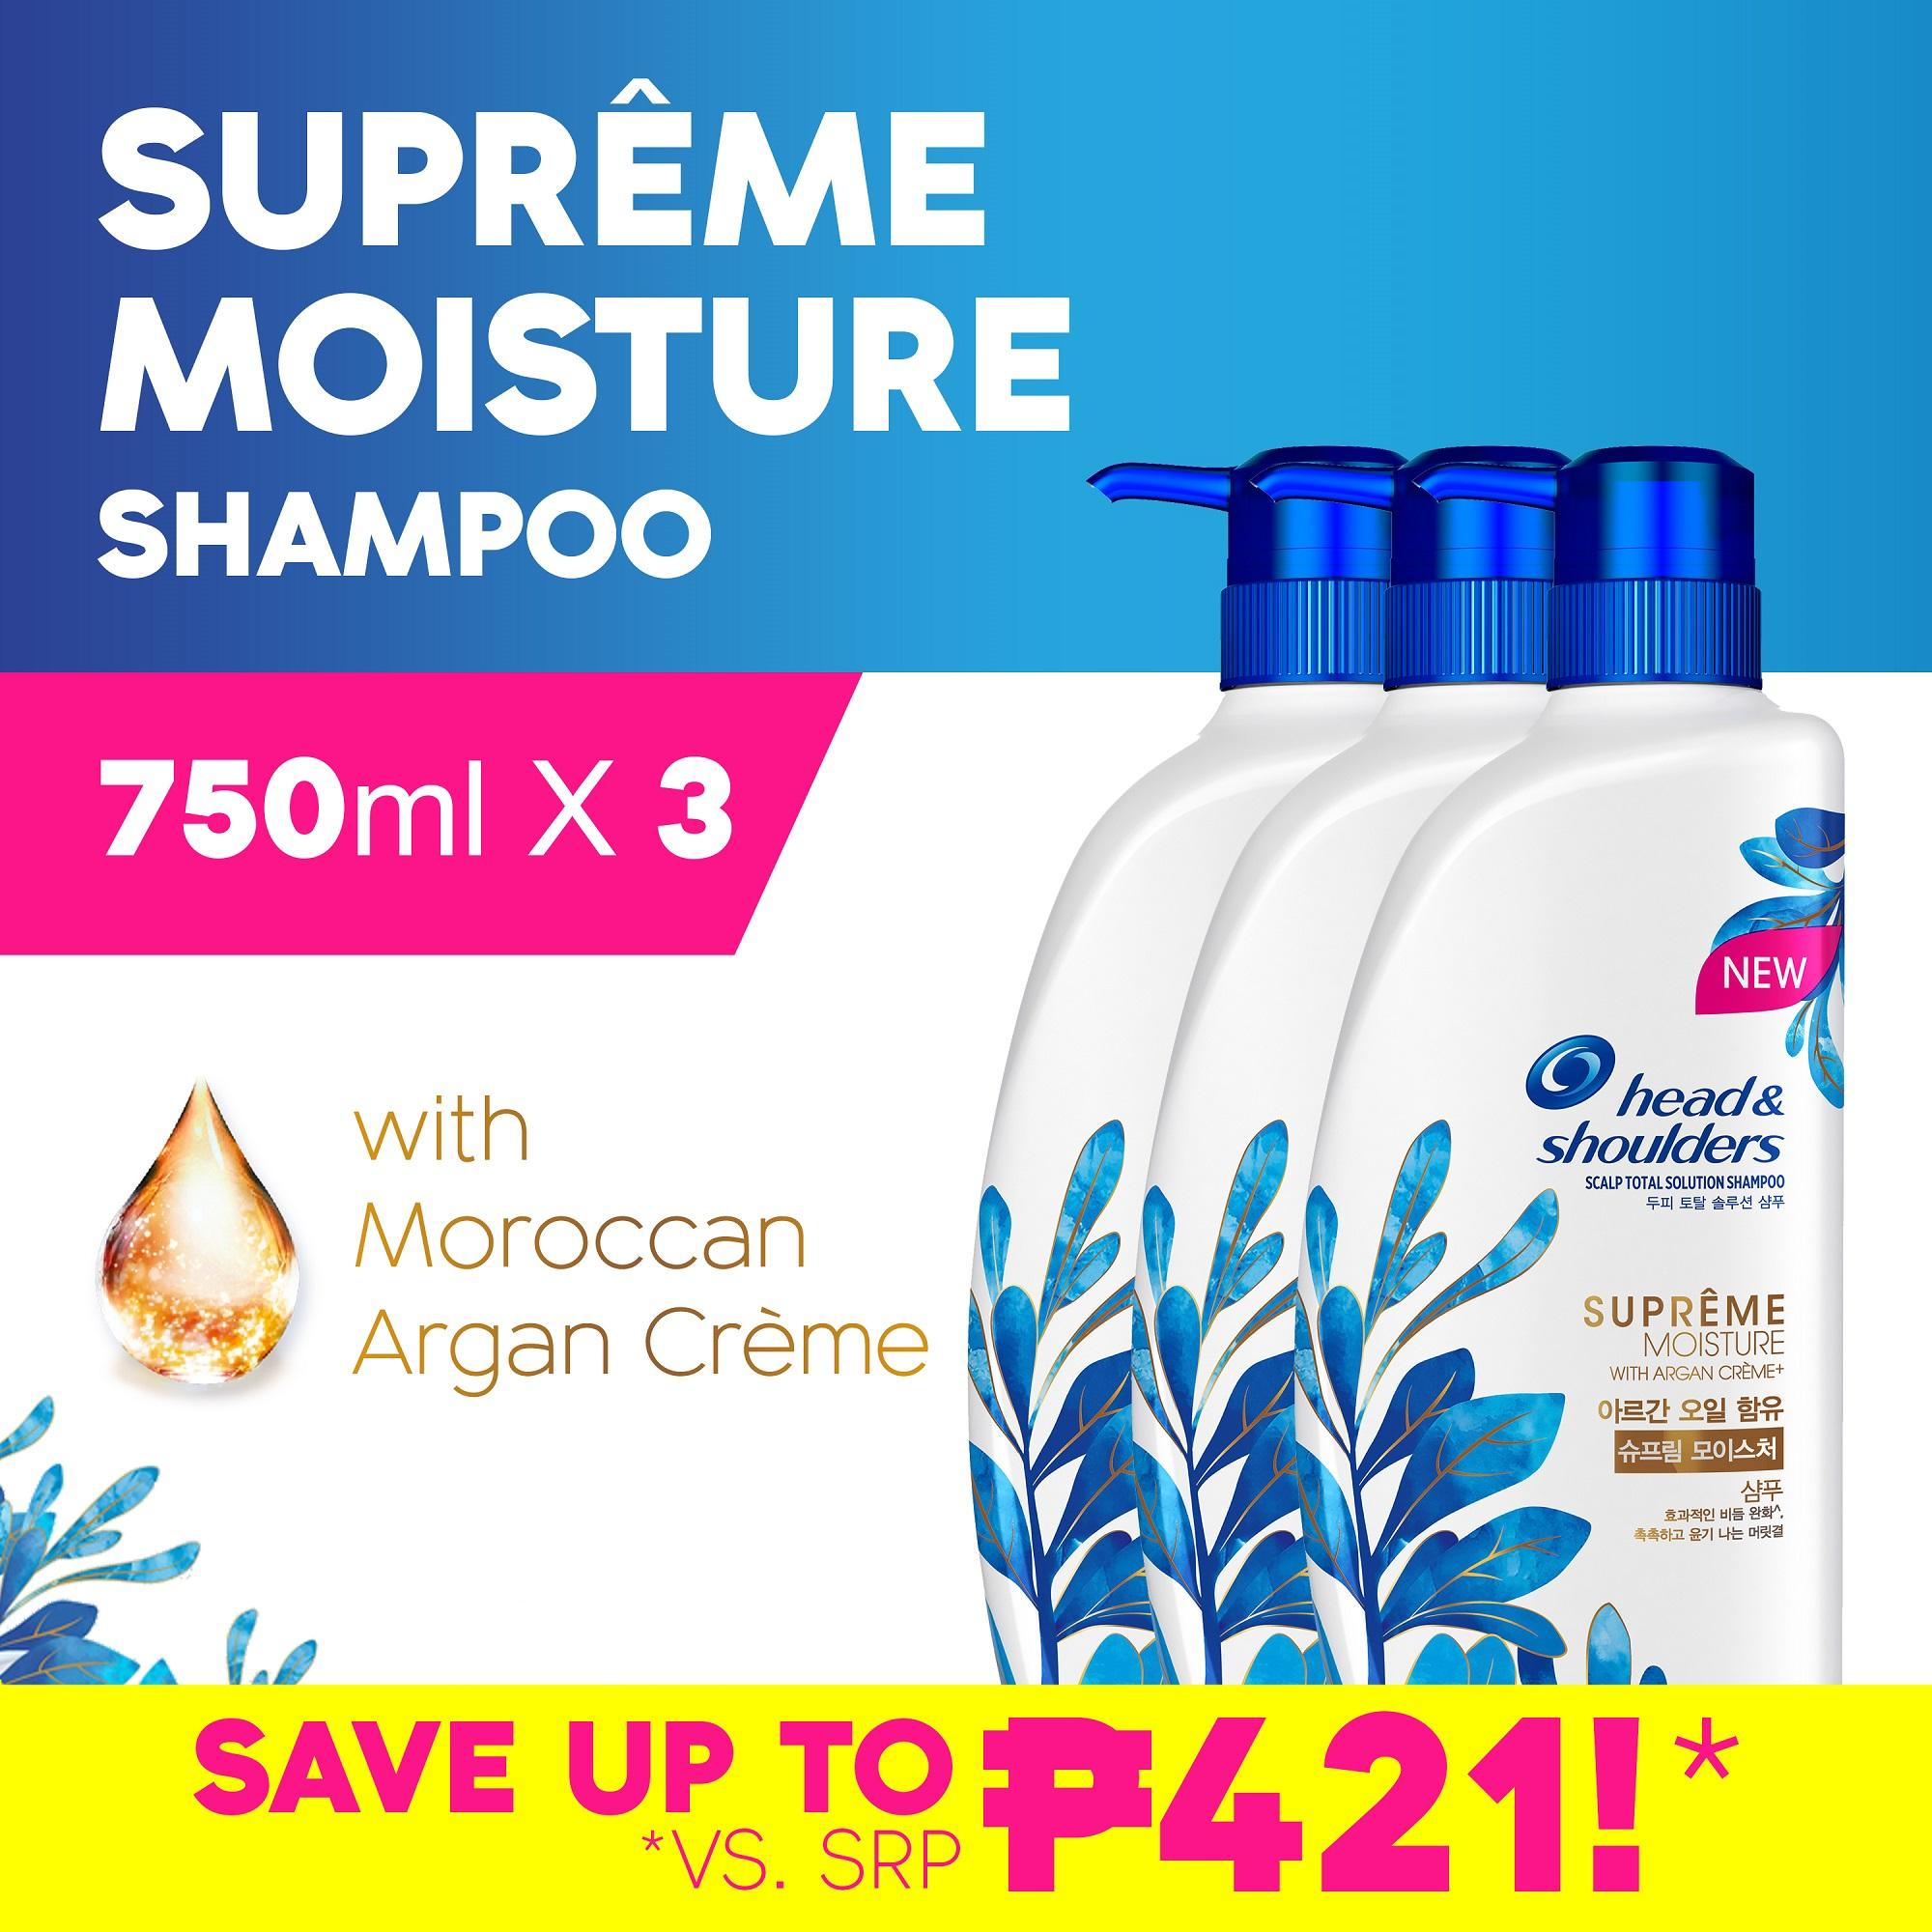 Head Shoulders Philippines Price List Shampoo Samphoo And New Supreme Moisture 750ml